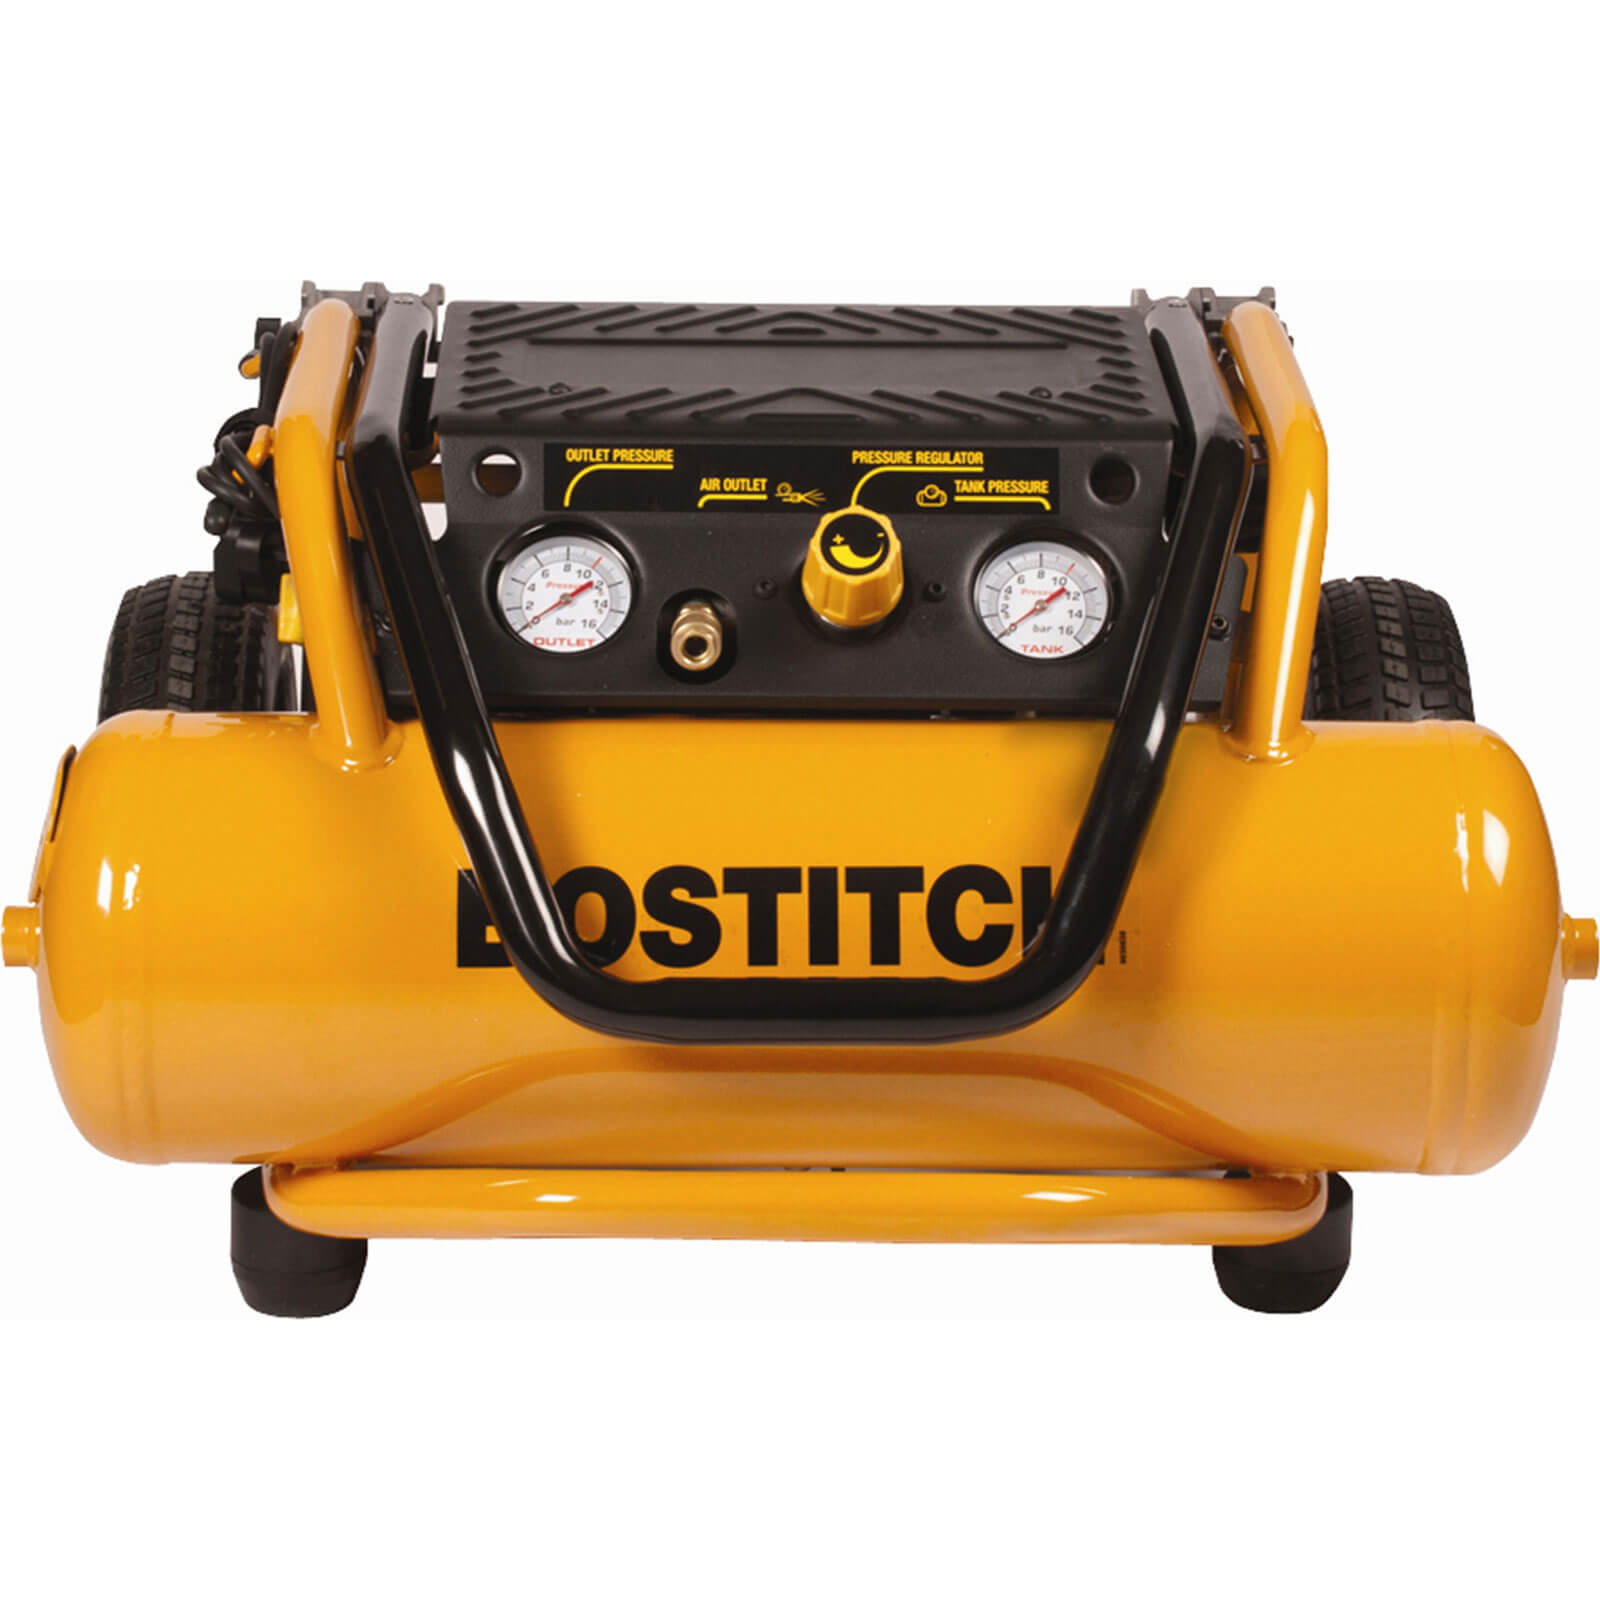 Bostitch PS20-U Site Electric Air Compressor with 20 Litre Tank & Wheels 1800w 110v